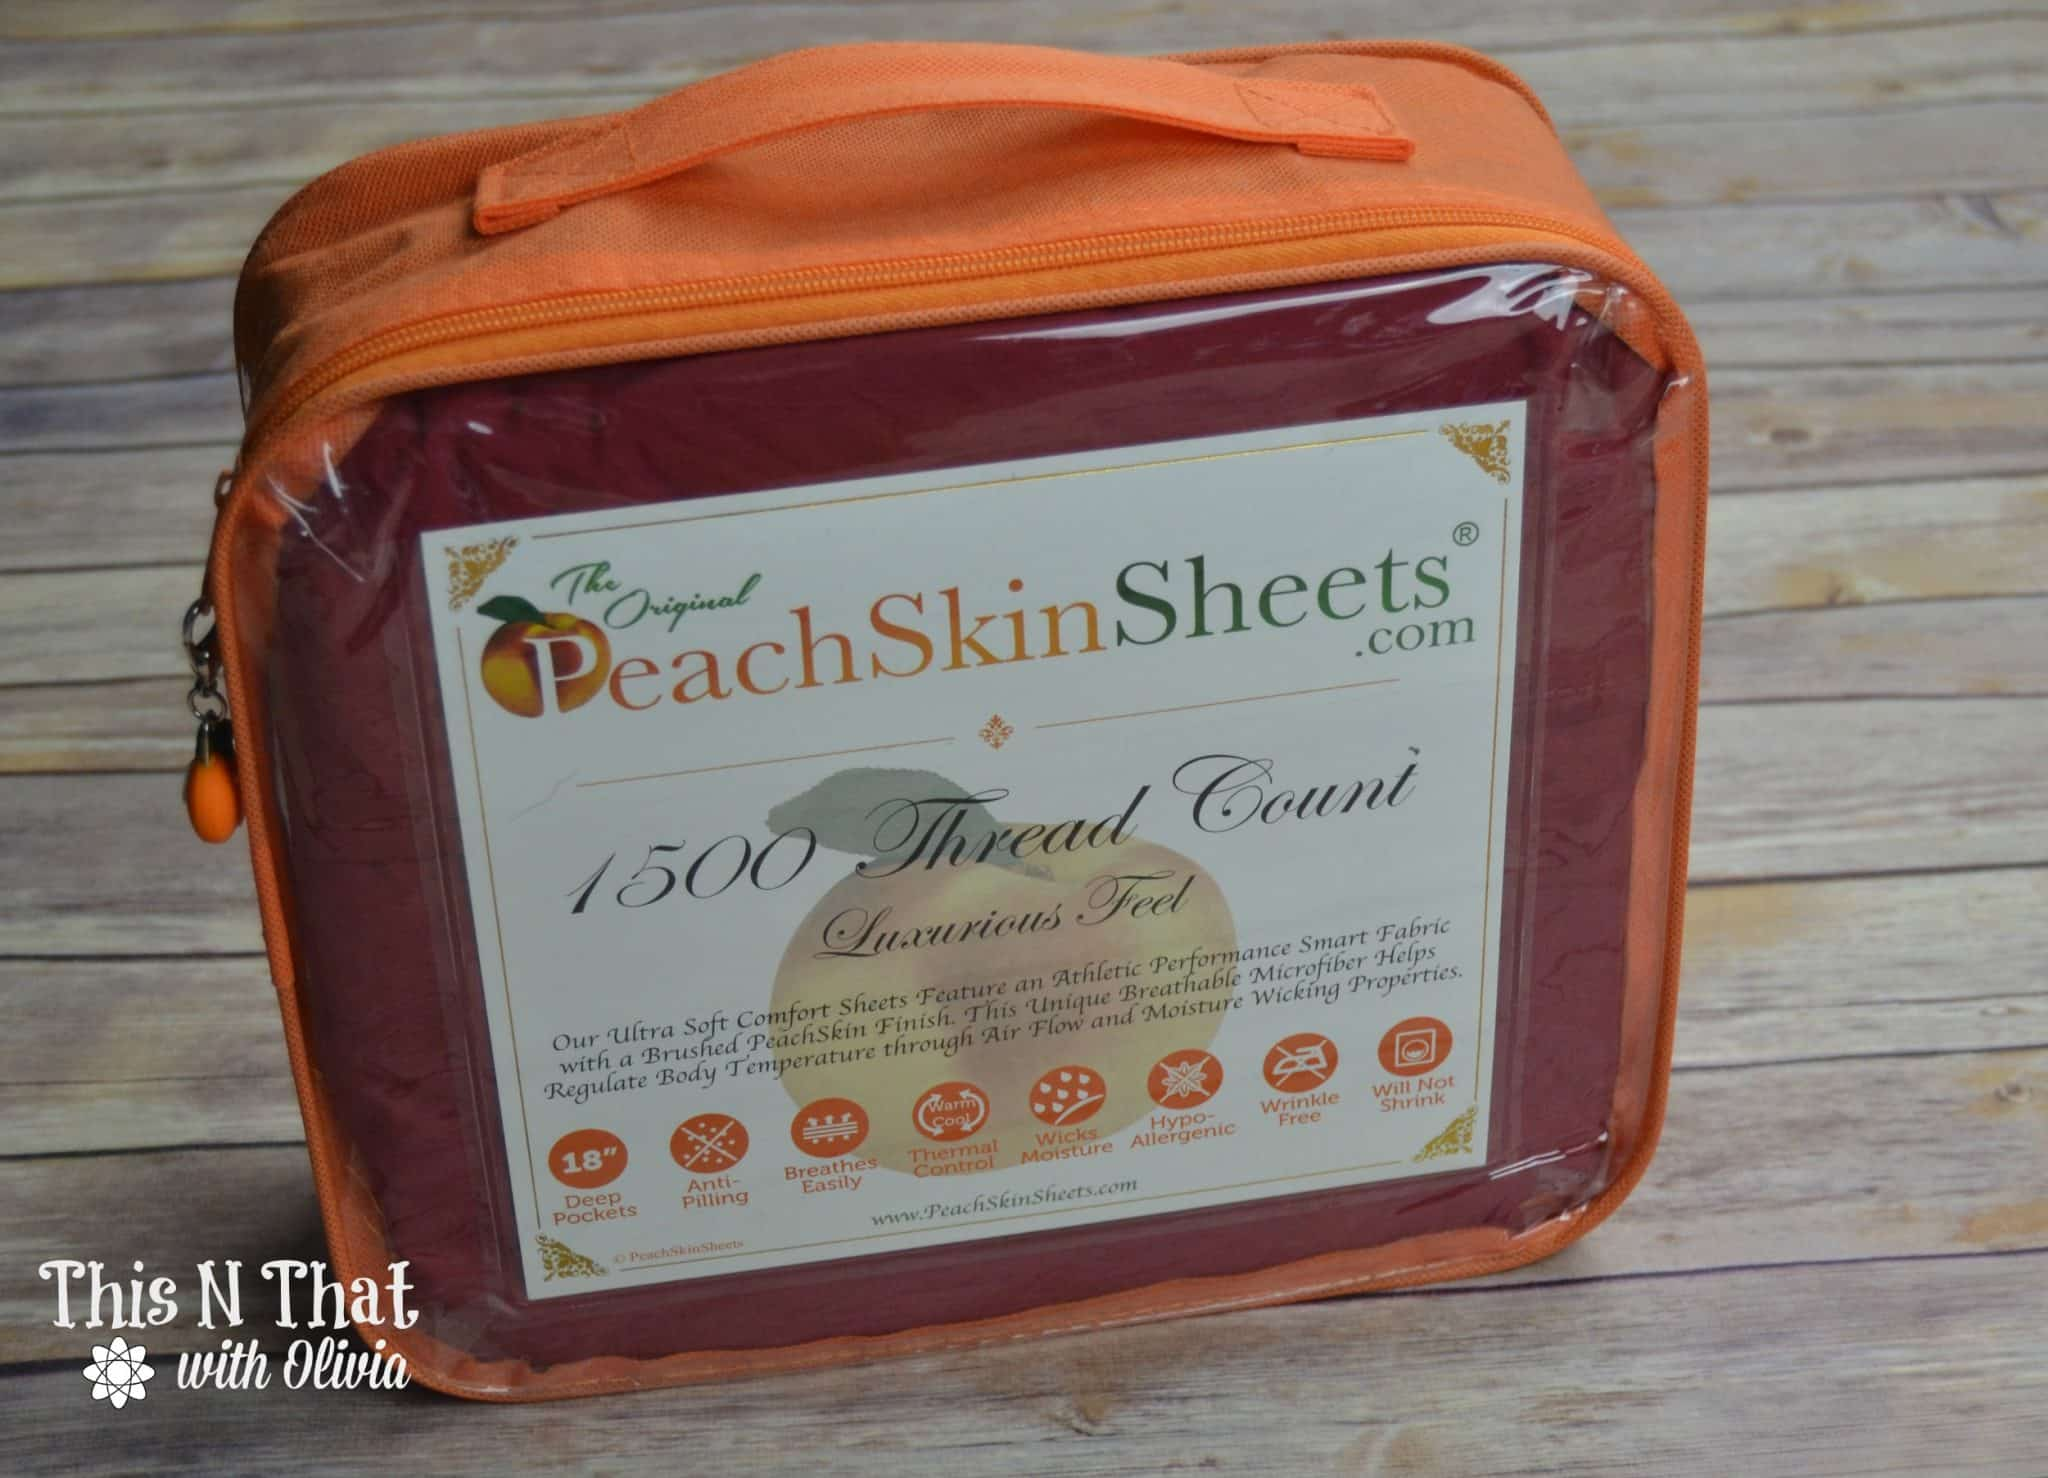 PeachSkinSheets Review + Giveaway! @PeachSkinSheets